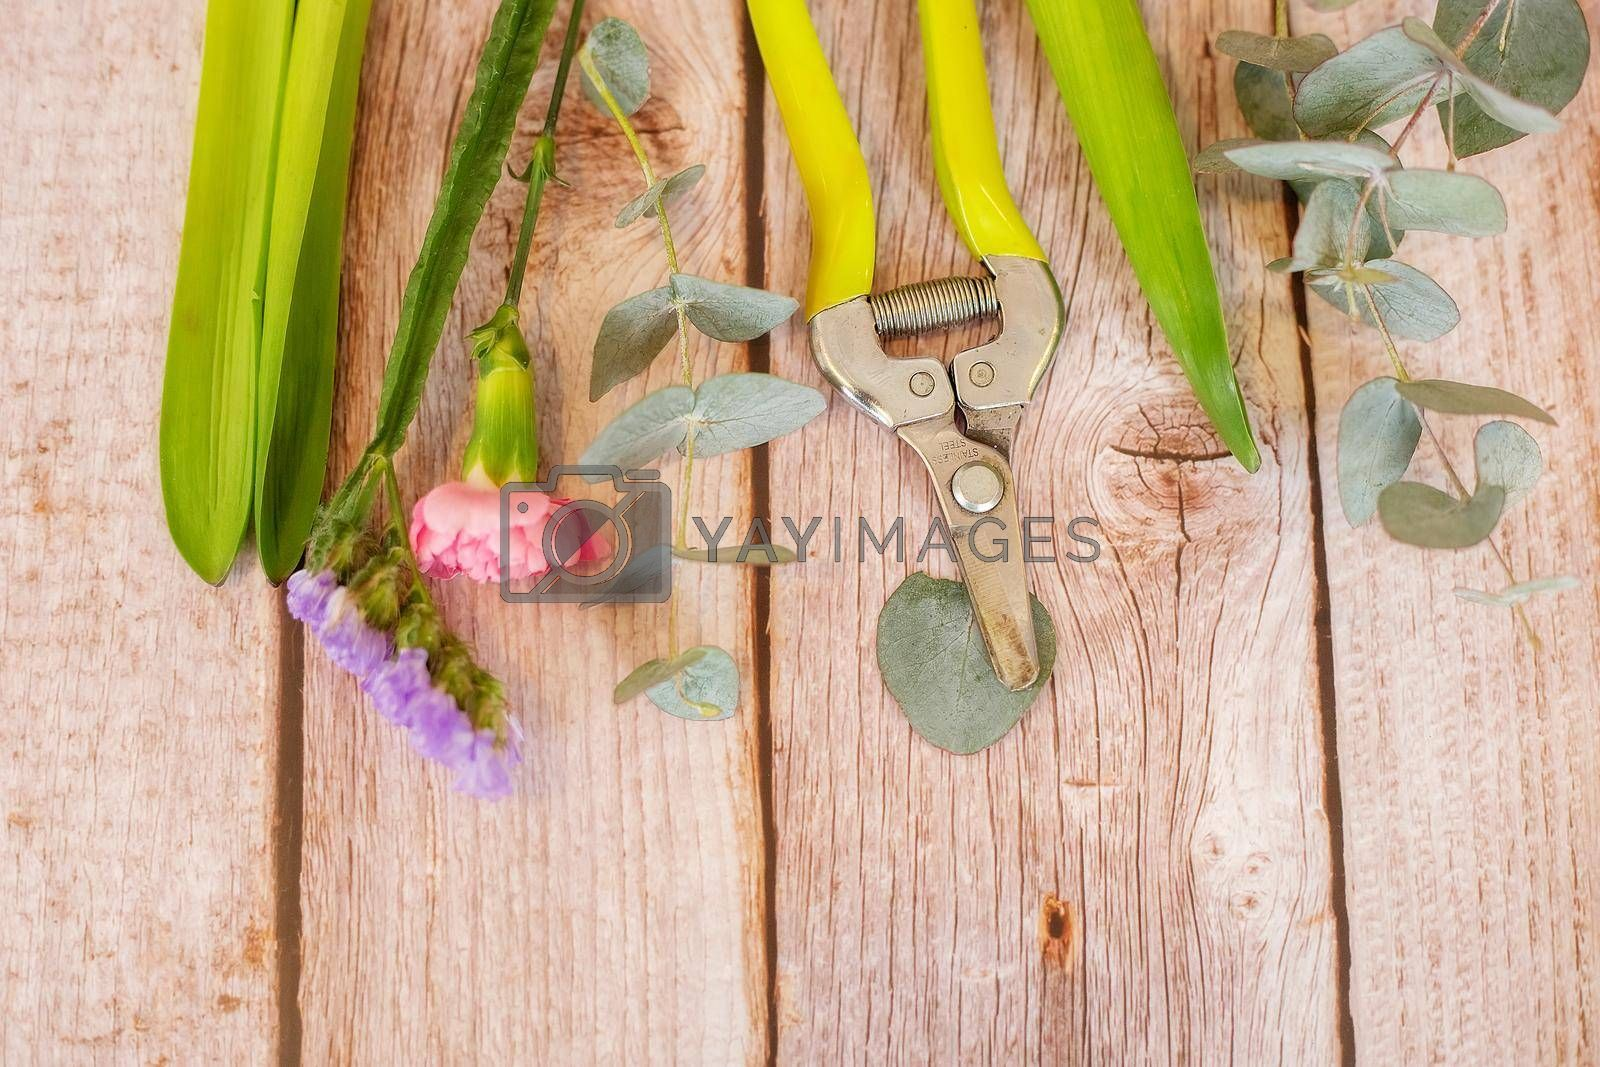 The florist desktop with working tools on light wooden background with place for text.